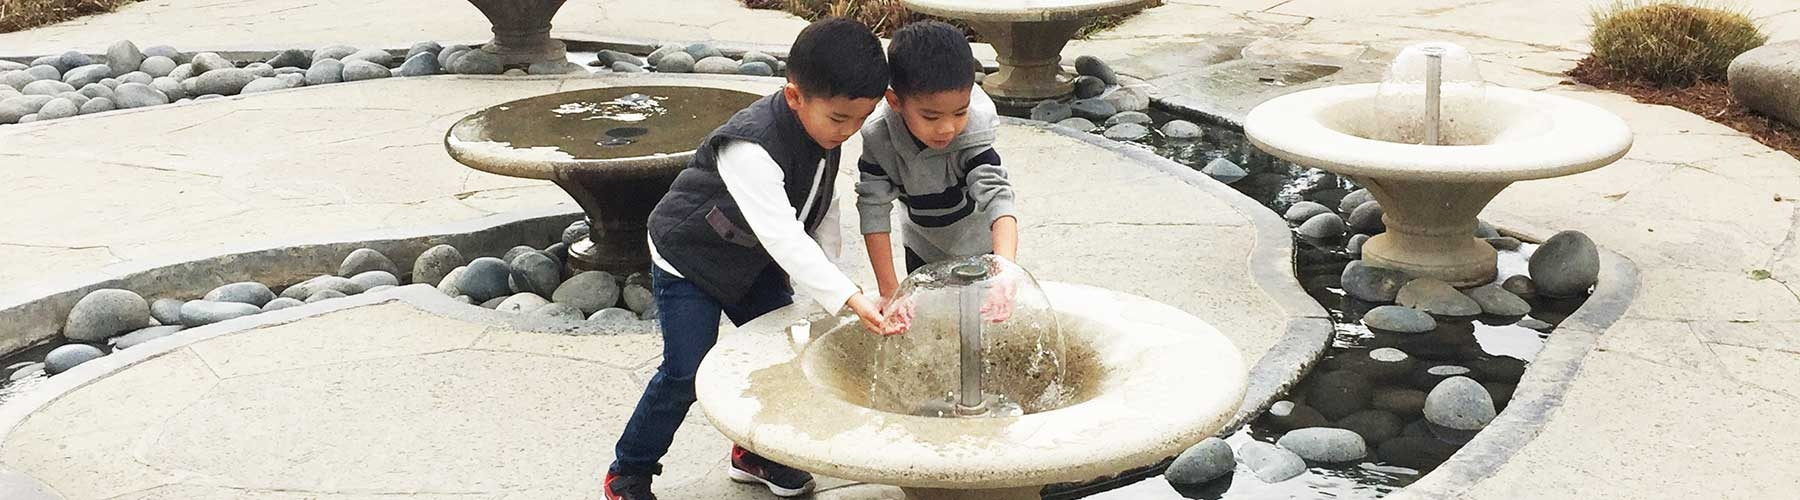 two children playing in a fountain